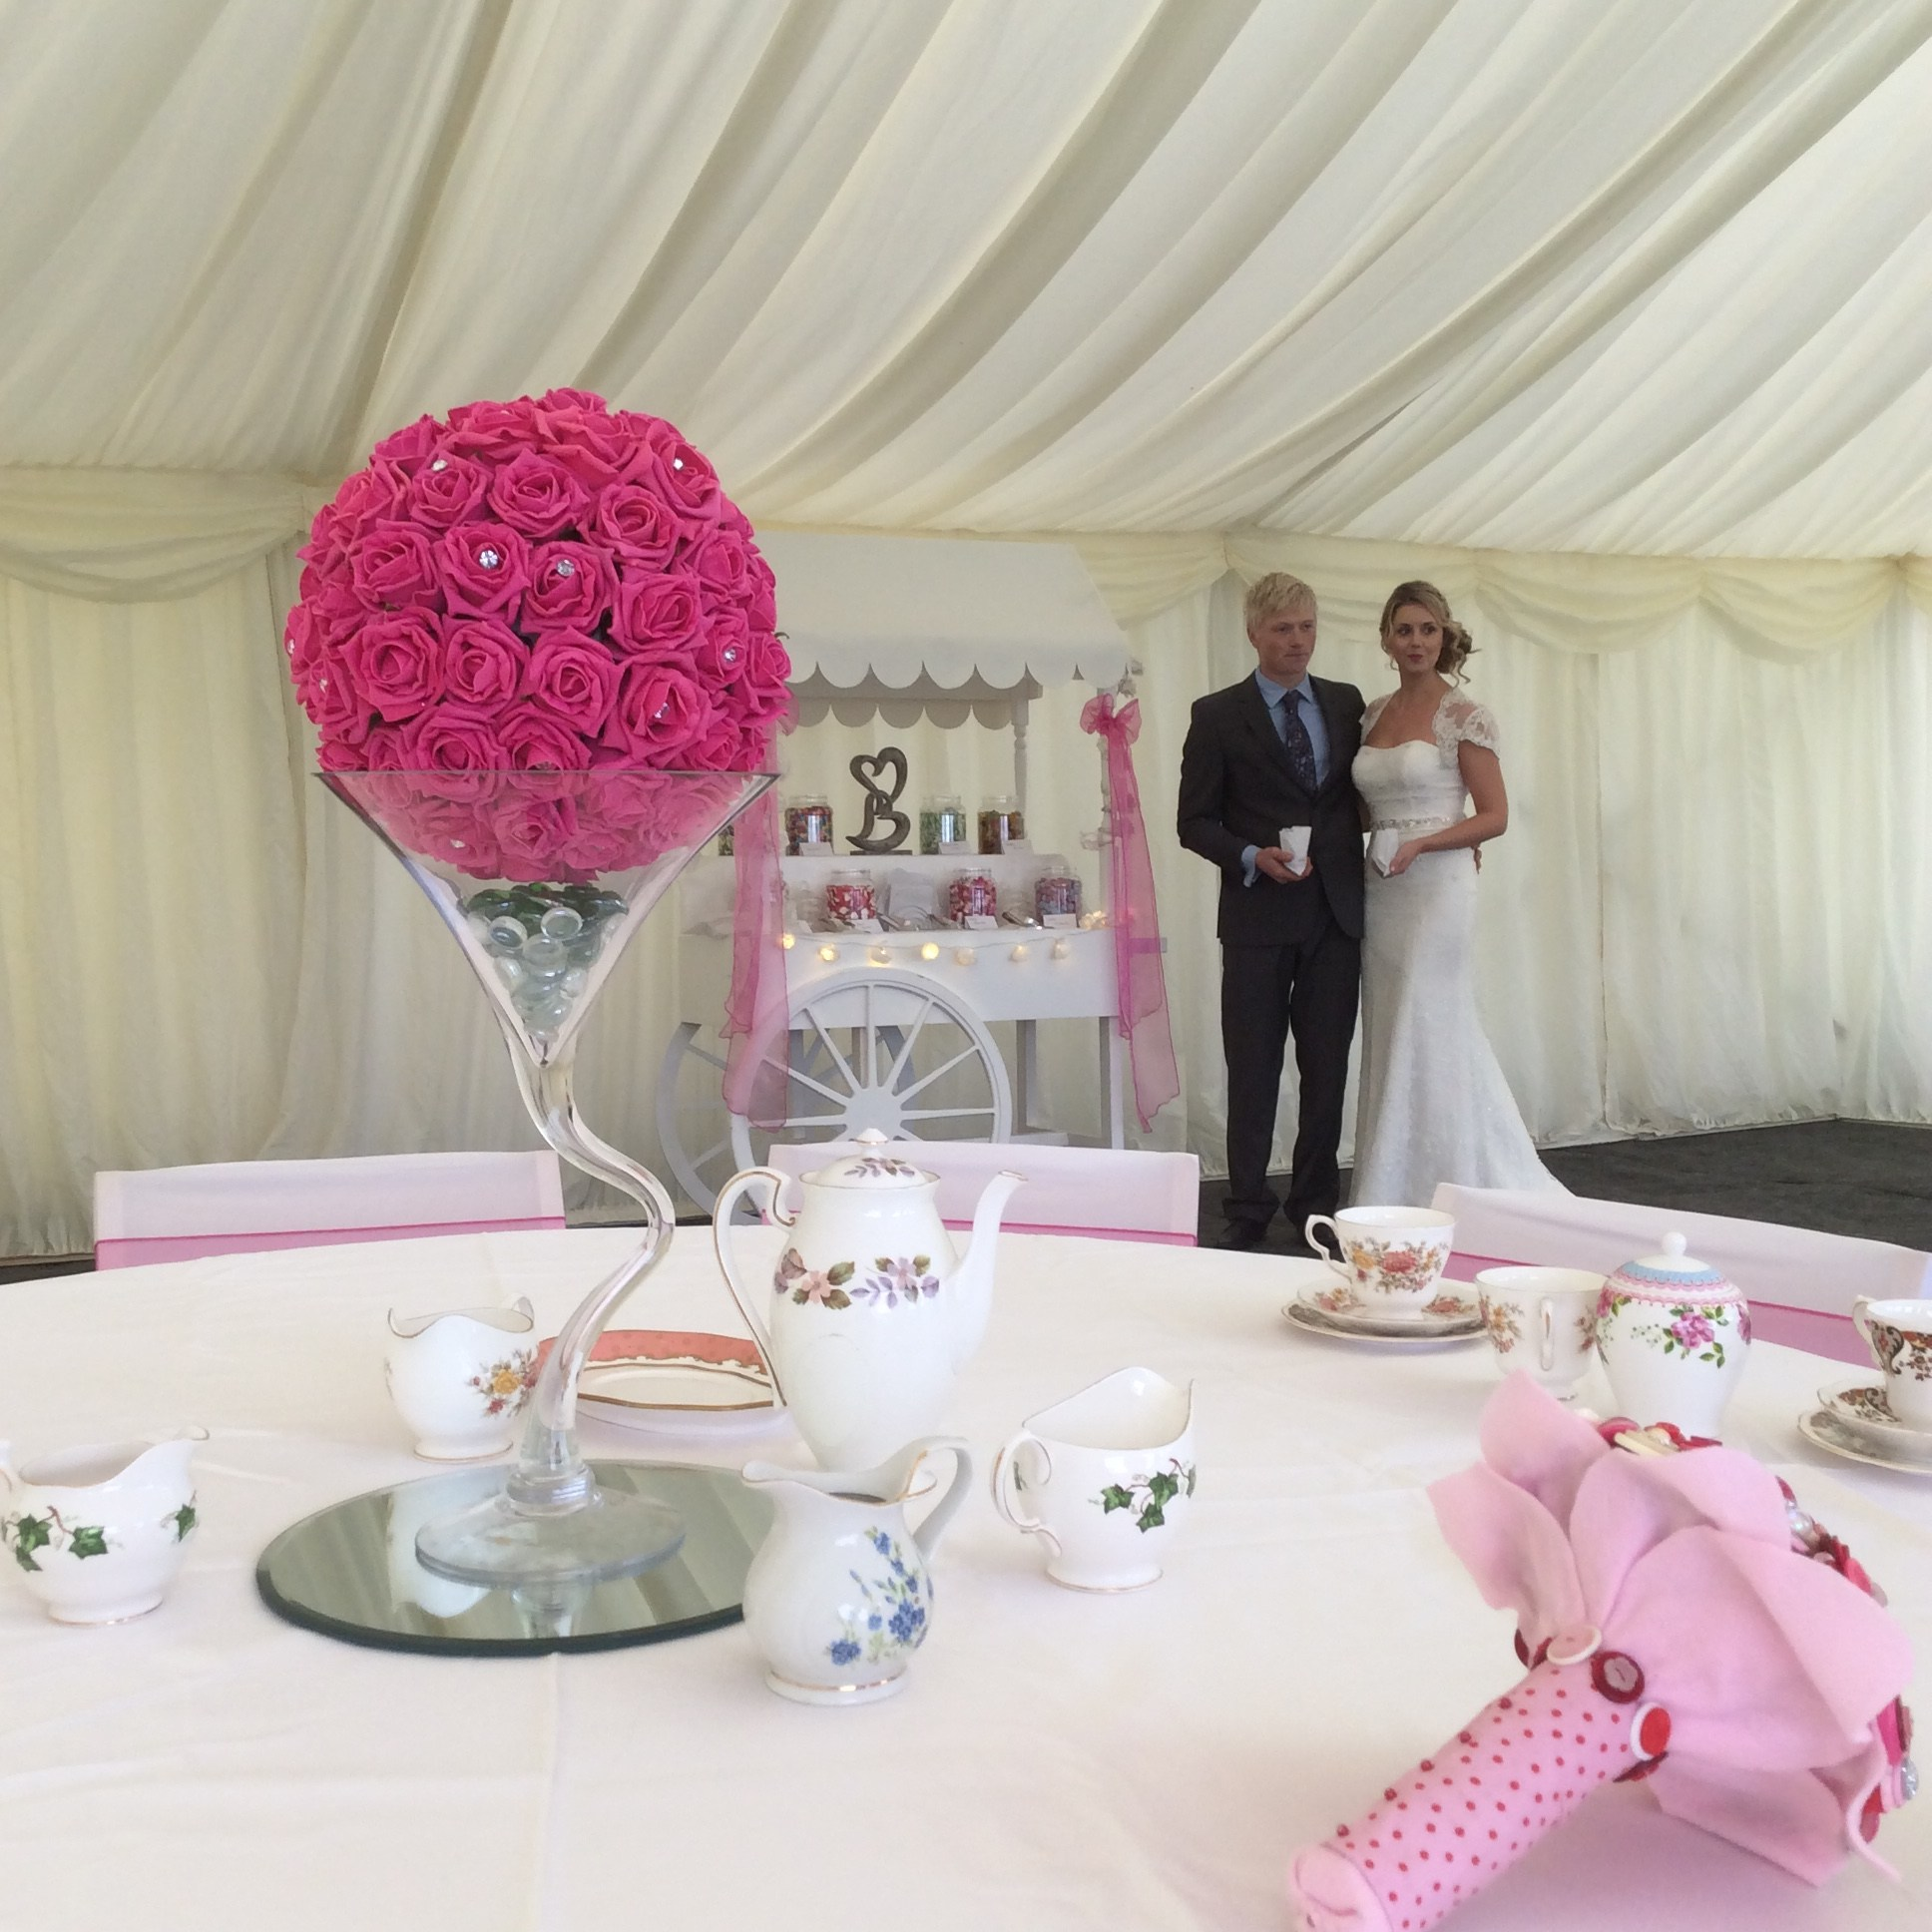 wedding chair cover hire bournemouth ergonomic adjustable lumbar support balloon a room weddings decoration and bridebook